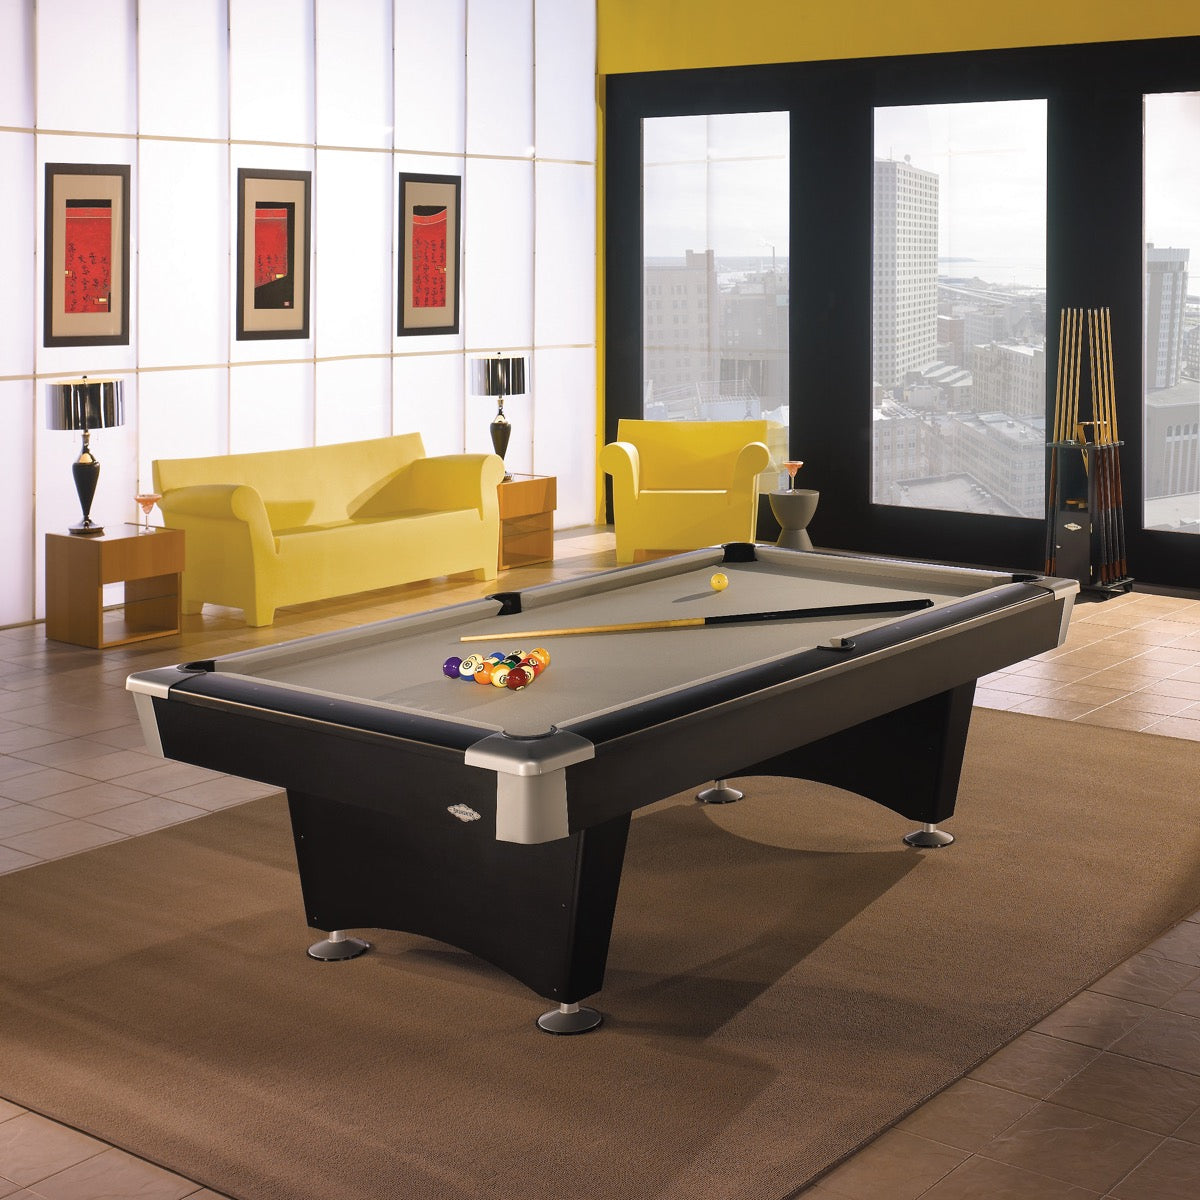 Black Wolf - Blatt Billiards